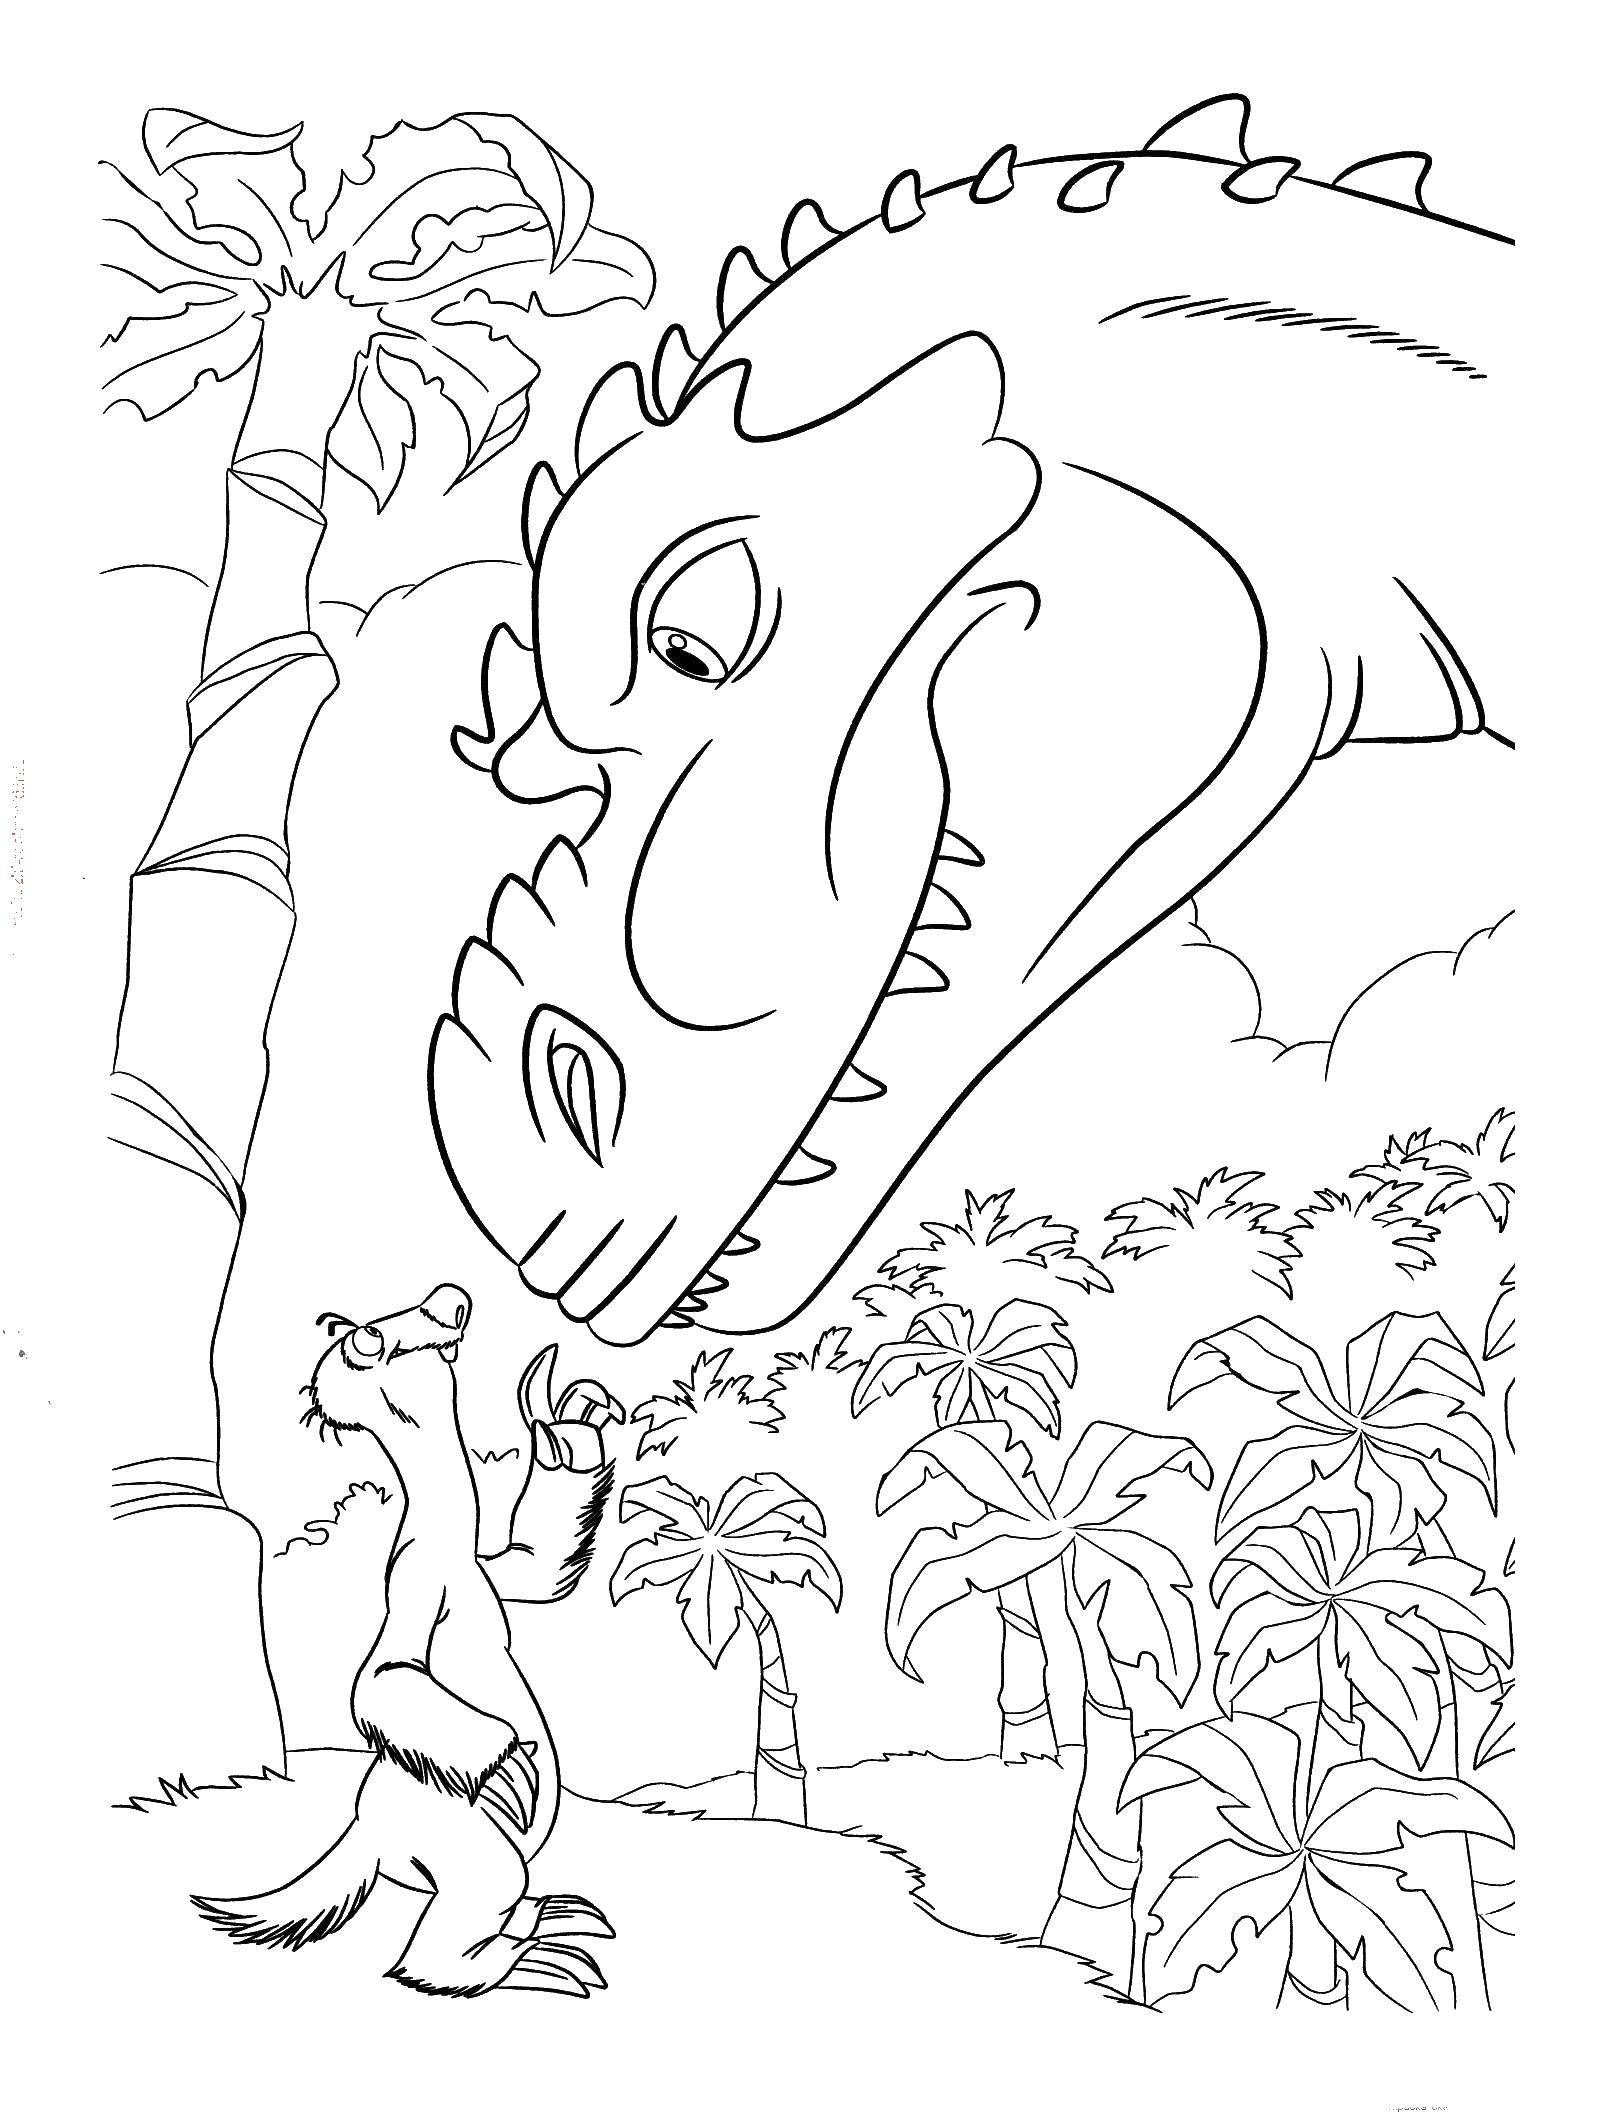 Coloring sheet ice age Download celebrity, basketball player, Allen Iverson.  Print ,coloring,